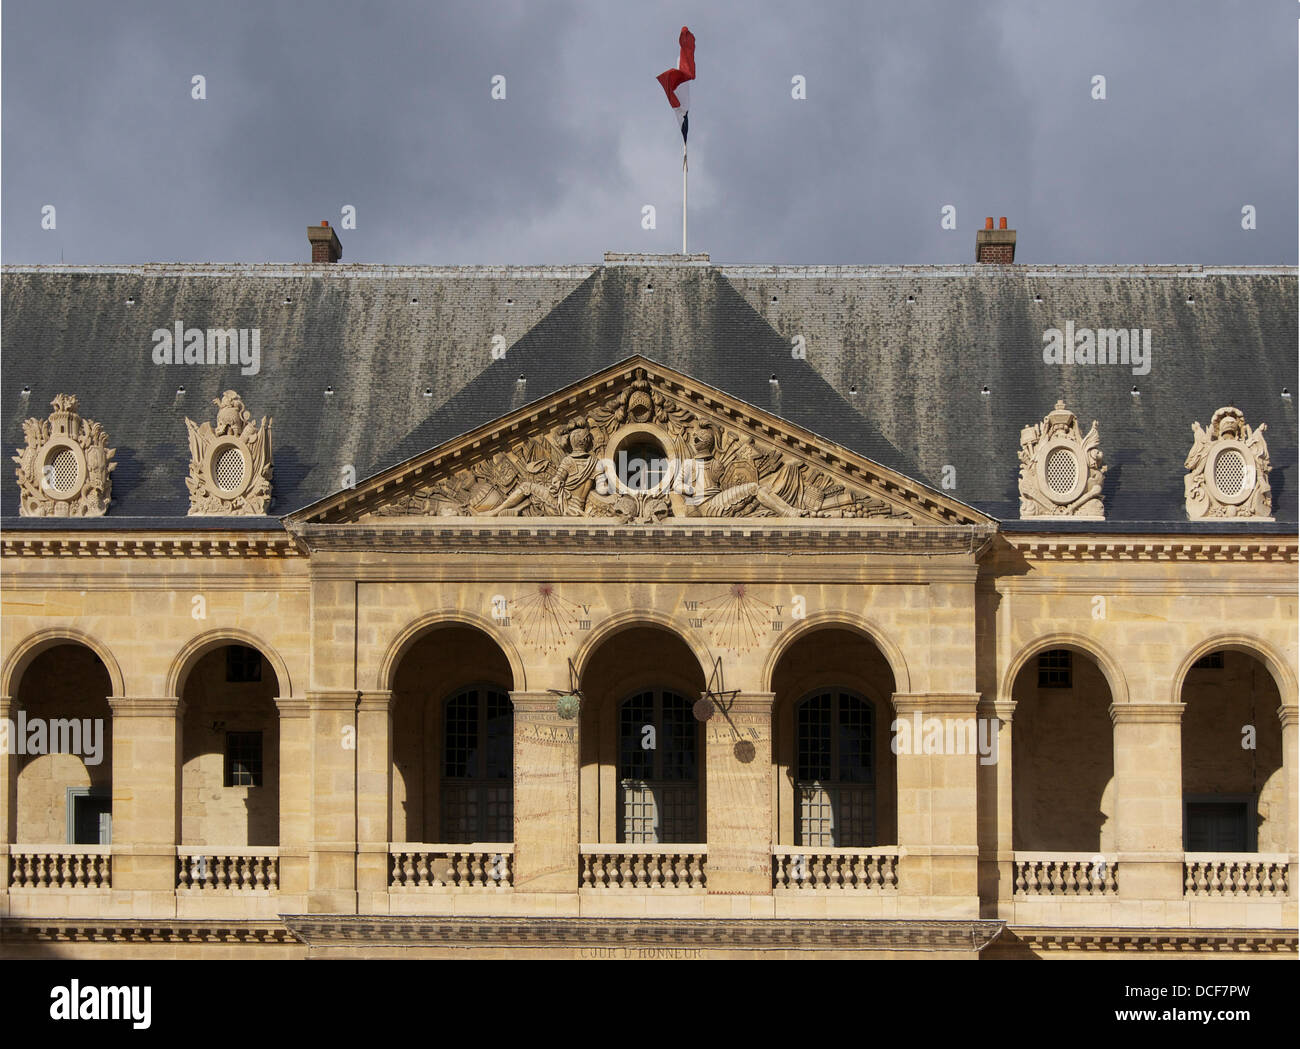 inside the 'honor courtyard' of Les Invalides, Paris - Stock Image